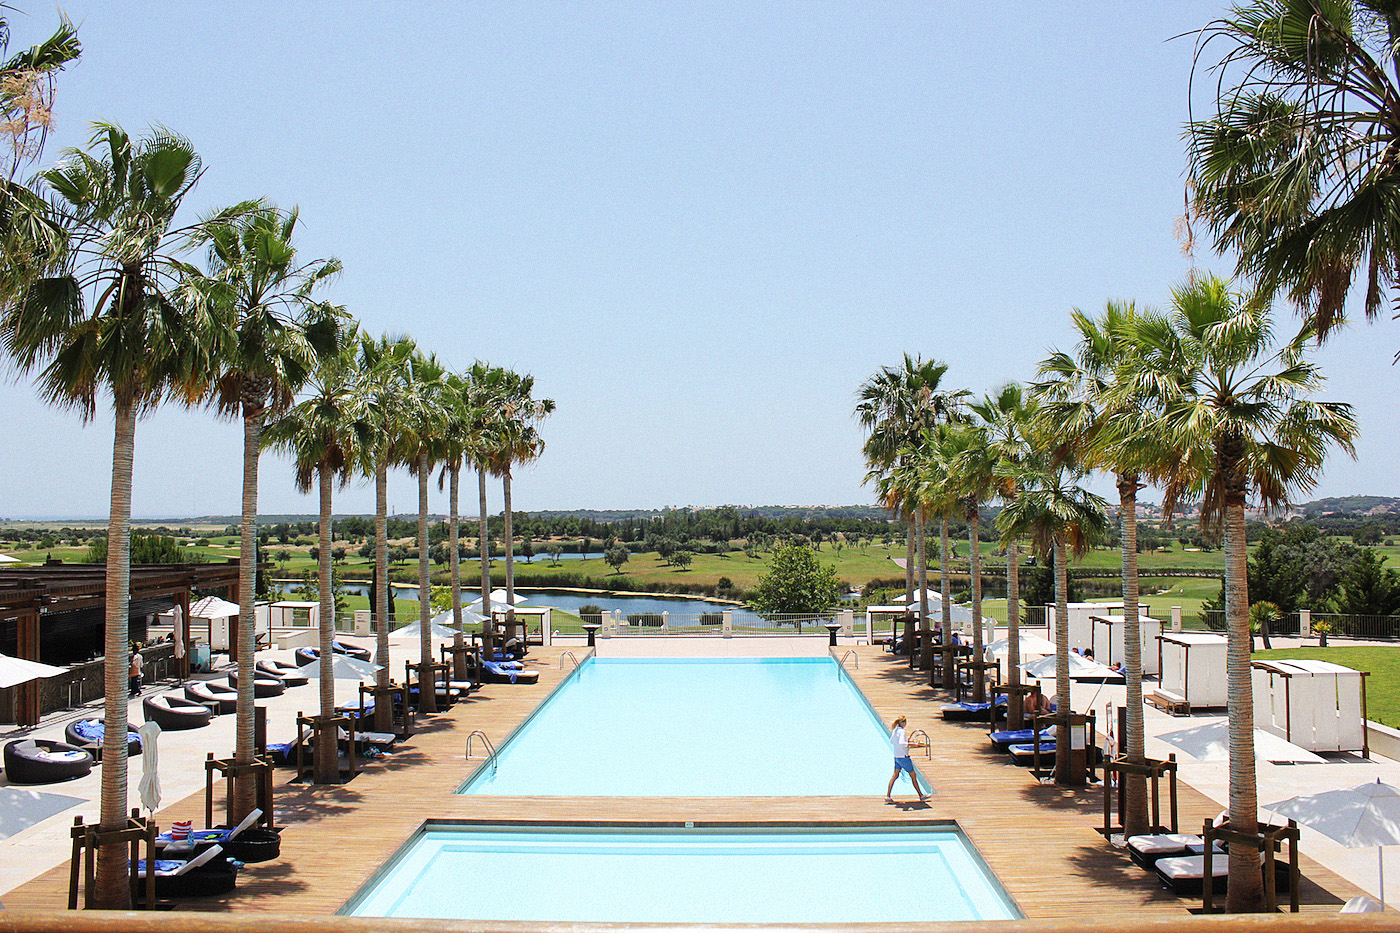 Algarve – golf hotel Anantara Vilamoura Algarve Resort